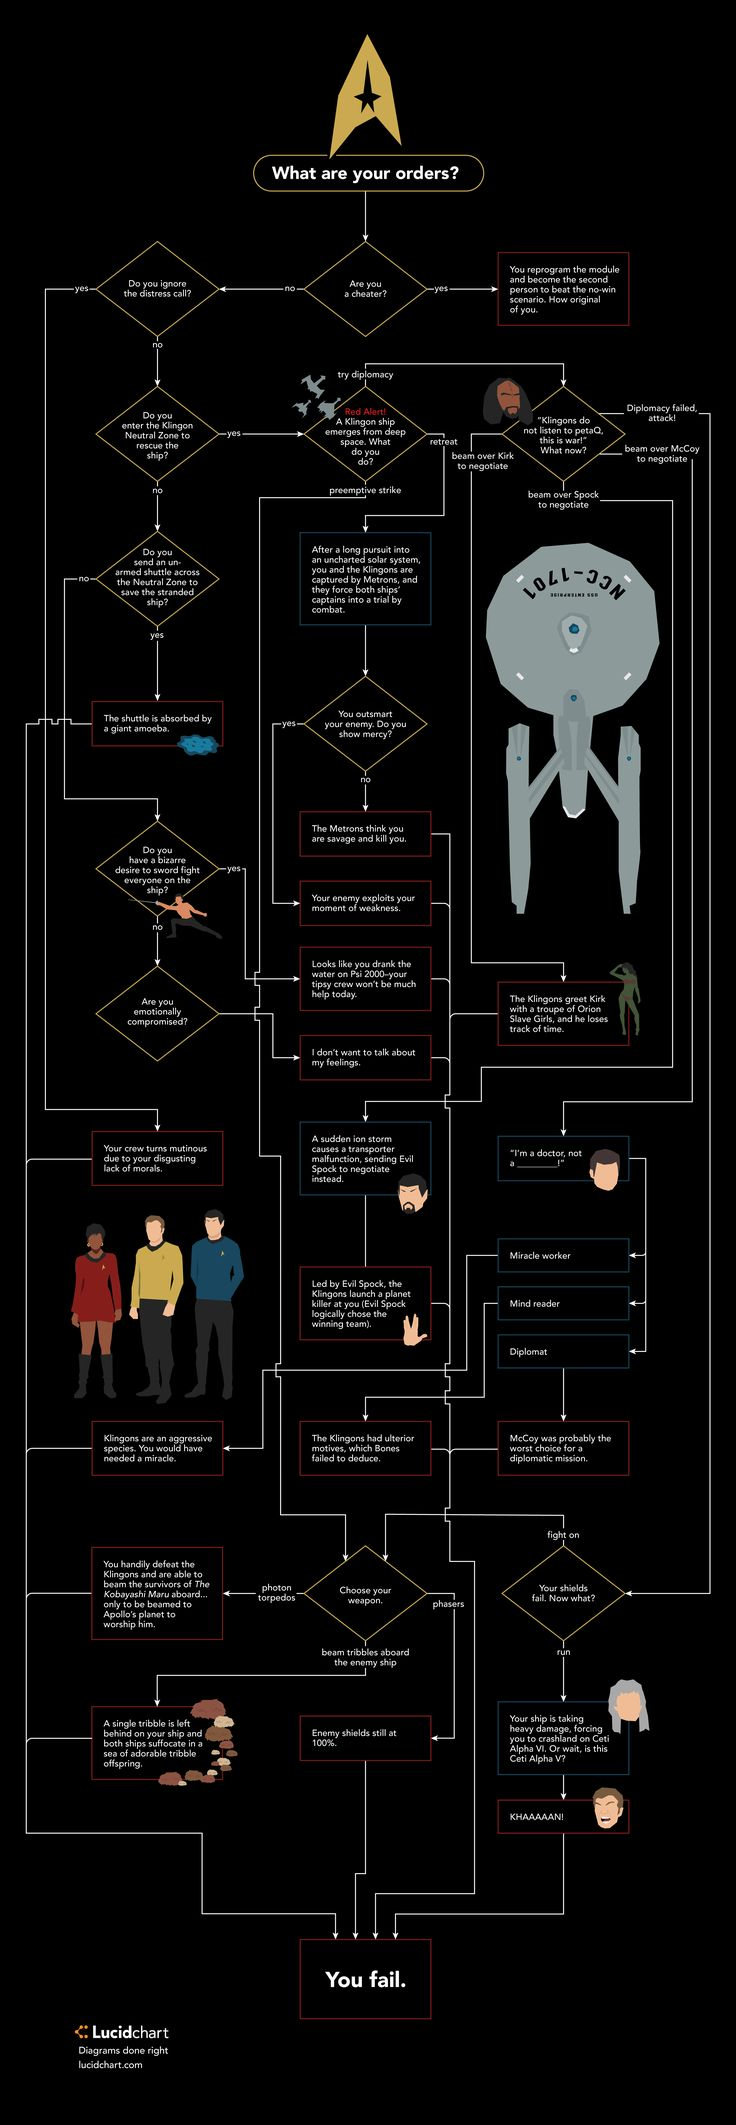 Think you have what it takes to Live Long And Prosper? Put your Star Trek instincts to the test with this Kobayashi Maru flowchart!